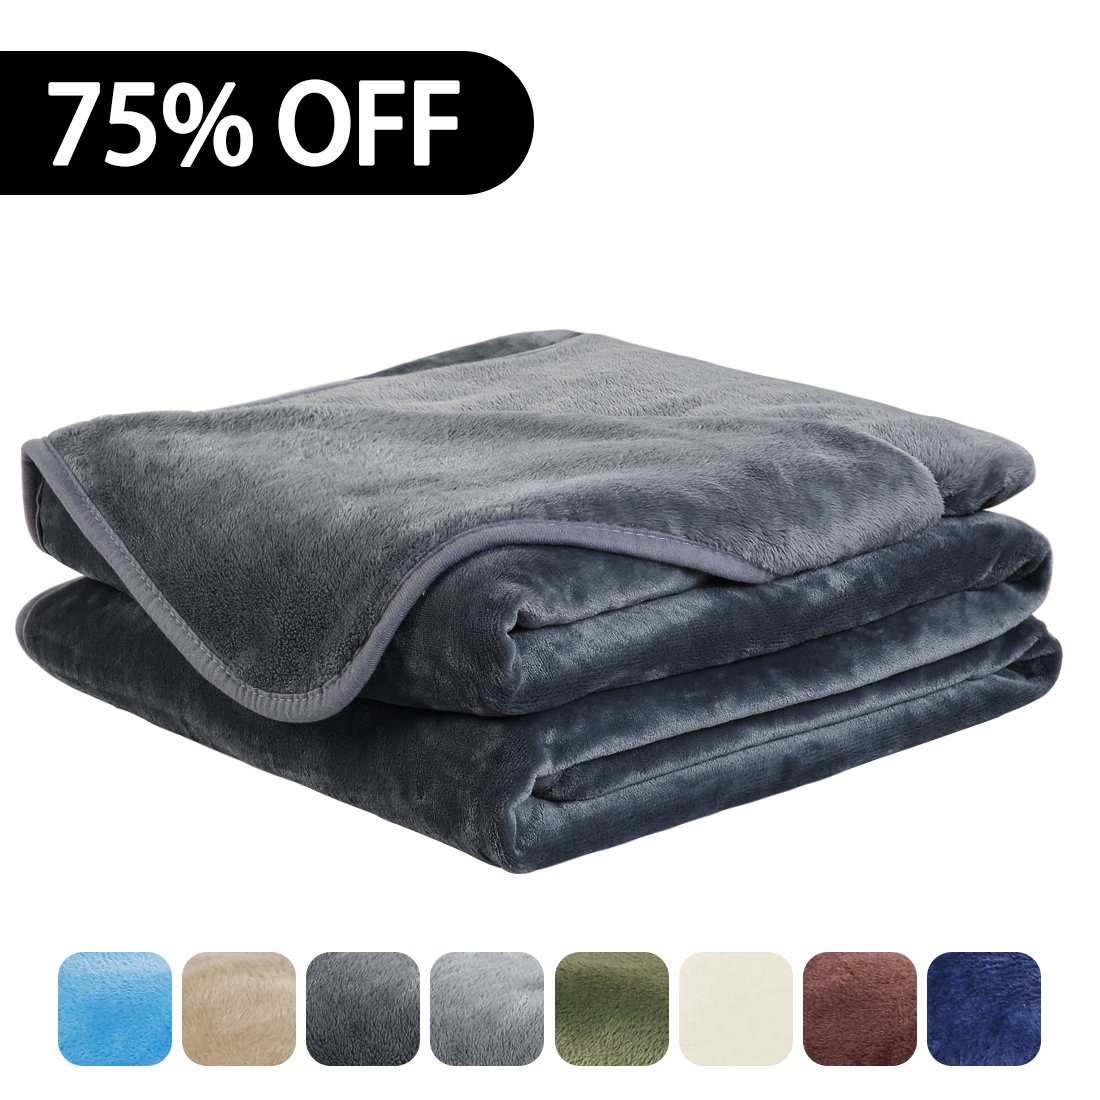 EASELAND Luxury Super Soft Queen Size Blanket Summer Cooling Warm Fuzzy Microplush Lightweight Thermal Fleece Blankets for Couch Bed Sofa,90 by 90 Inches,Dark Gray by EASELAND